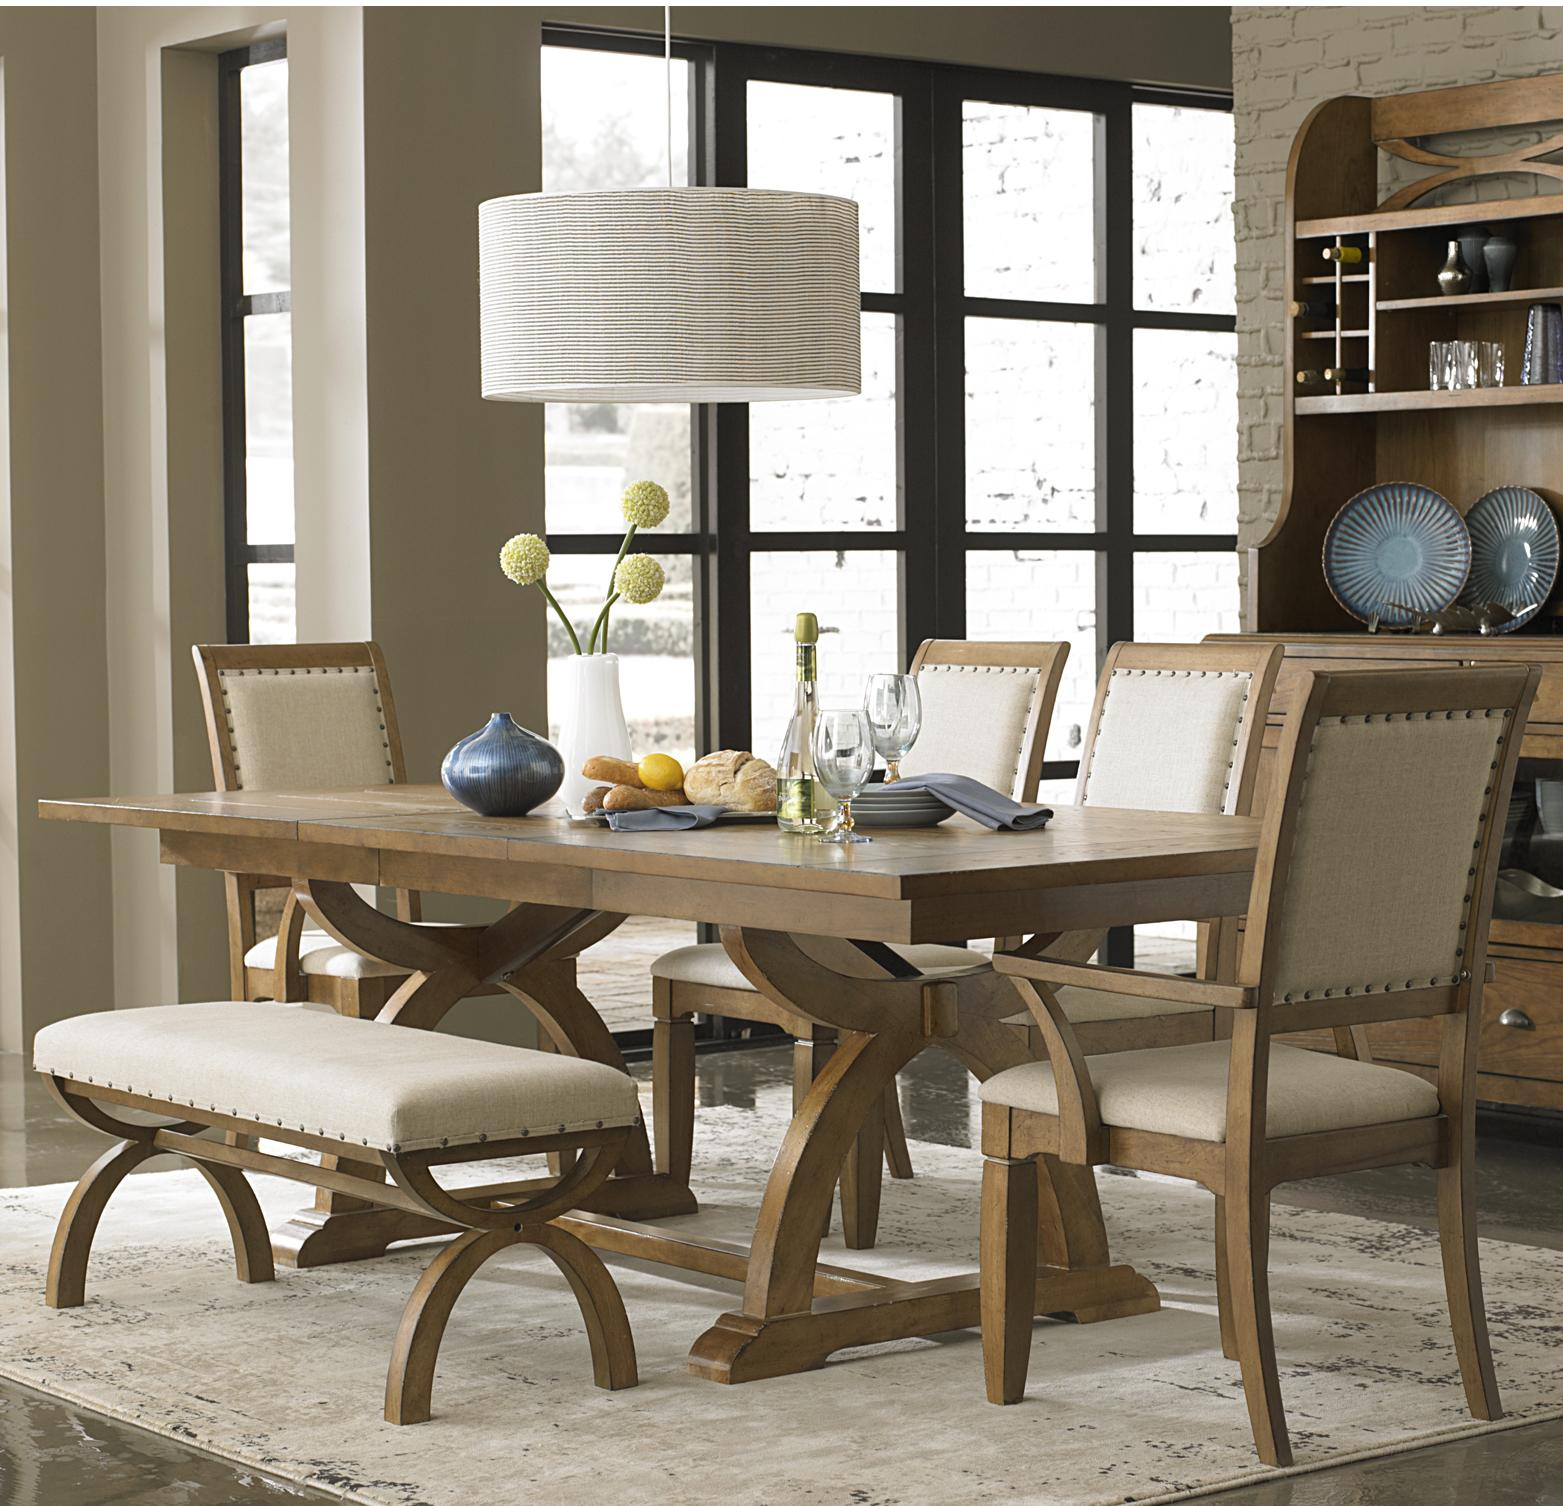 6 Piece Trestle Table Set with 4 Upholstered Chairs & Dining Bench